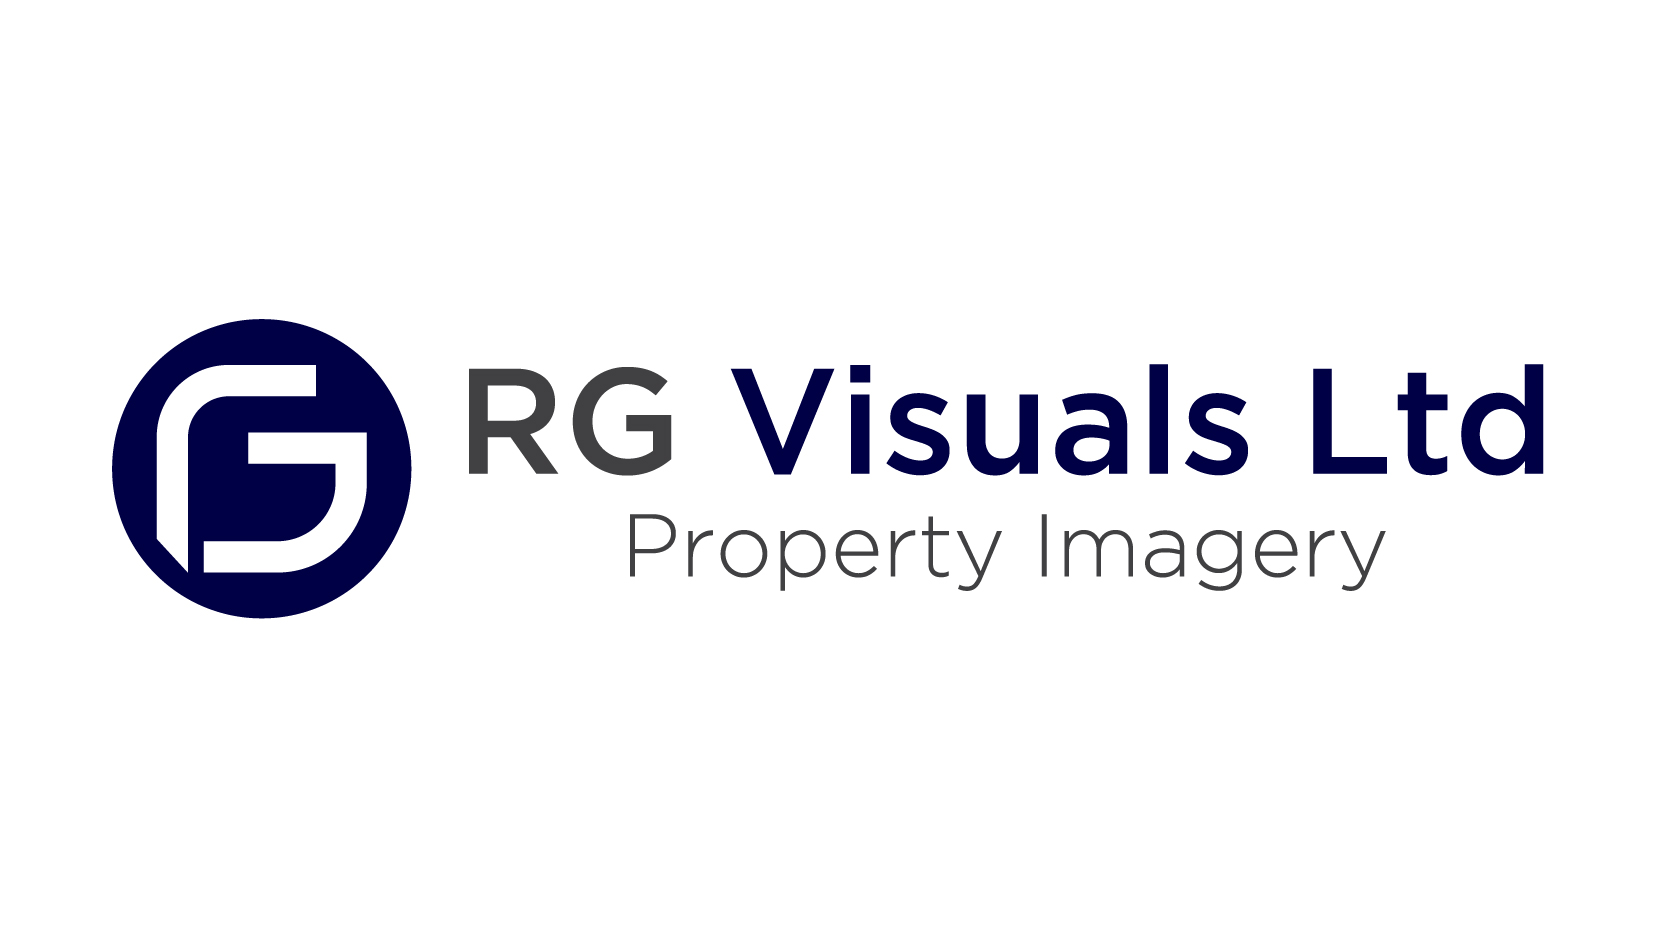 RG Visuals Ltd